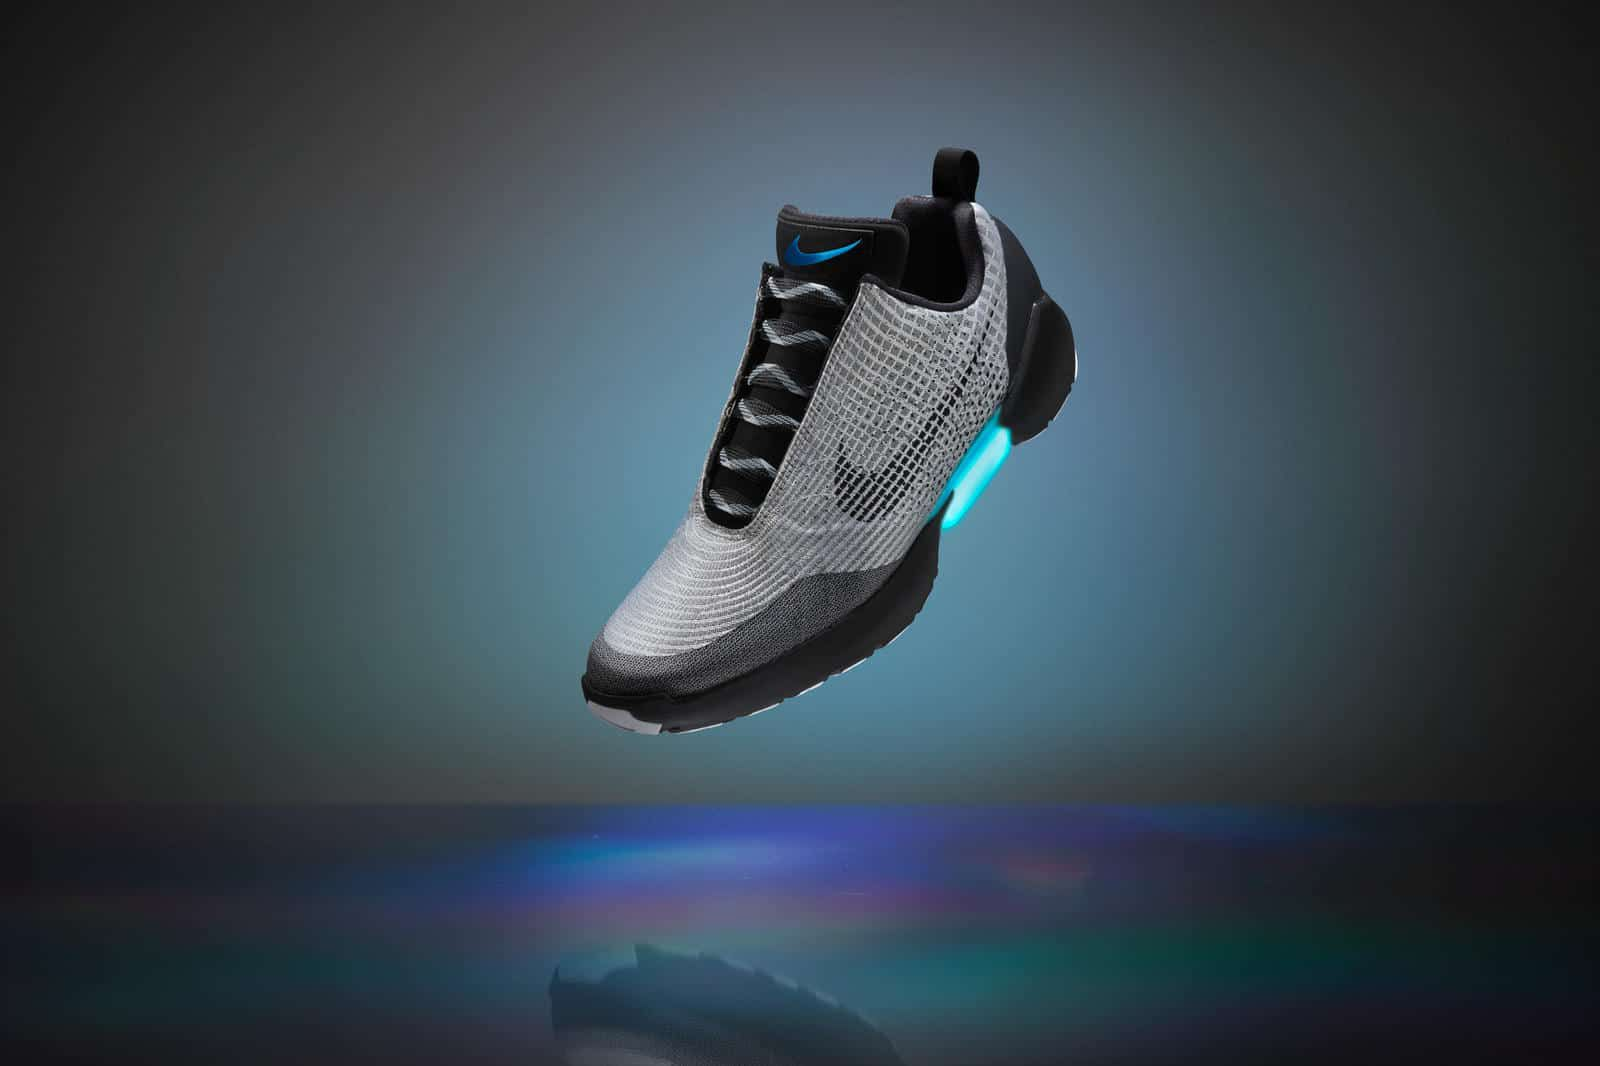 catch release info on new photos Nike lance la HyperAdapt, une chaussure qui se lace toute ...